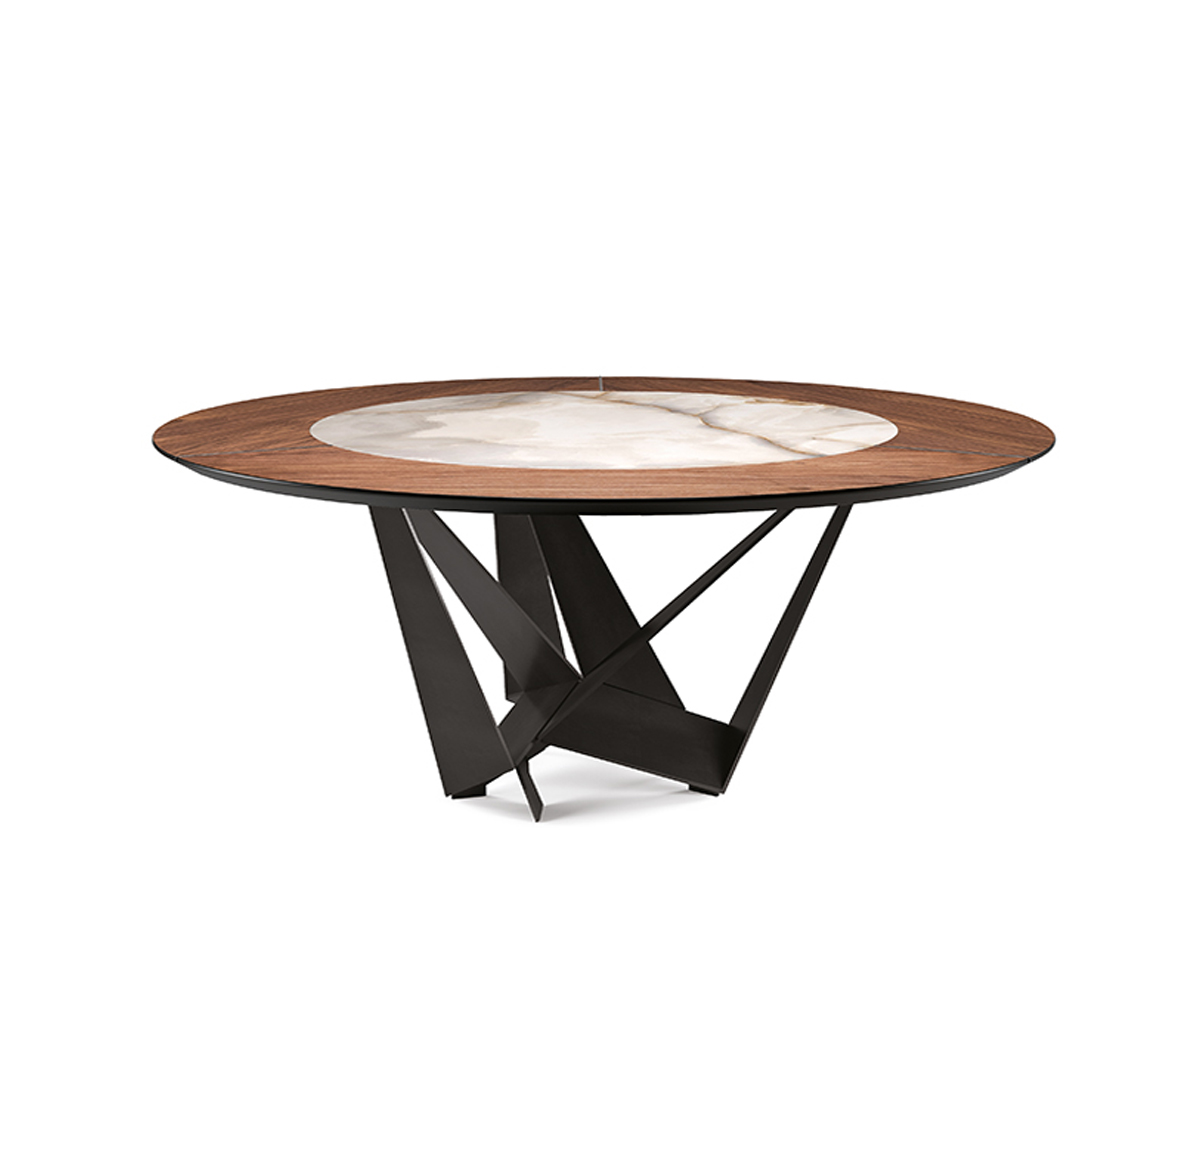 skorpio-round-ker-wood-fixed-table-by-cattelan-italia